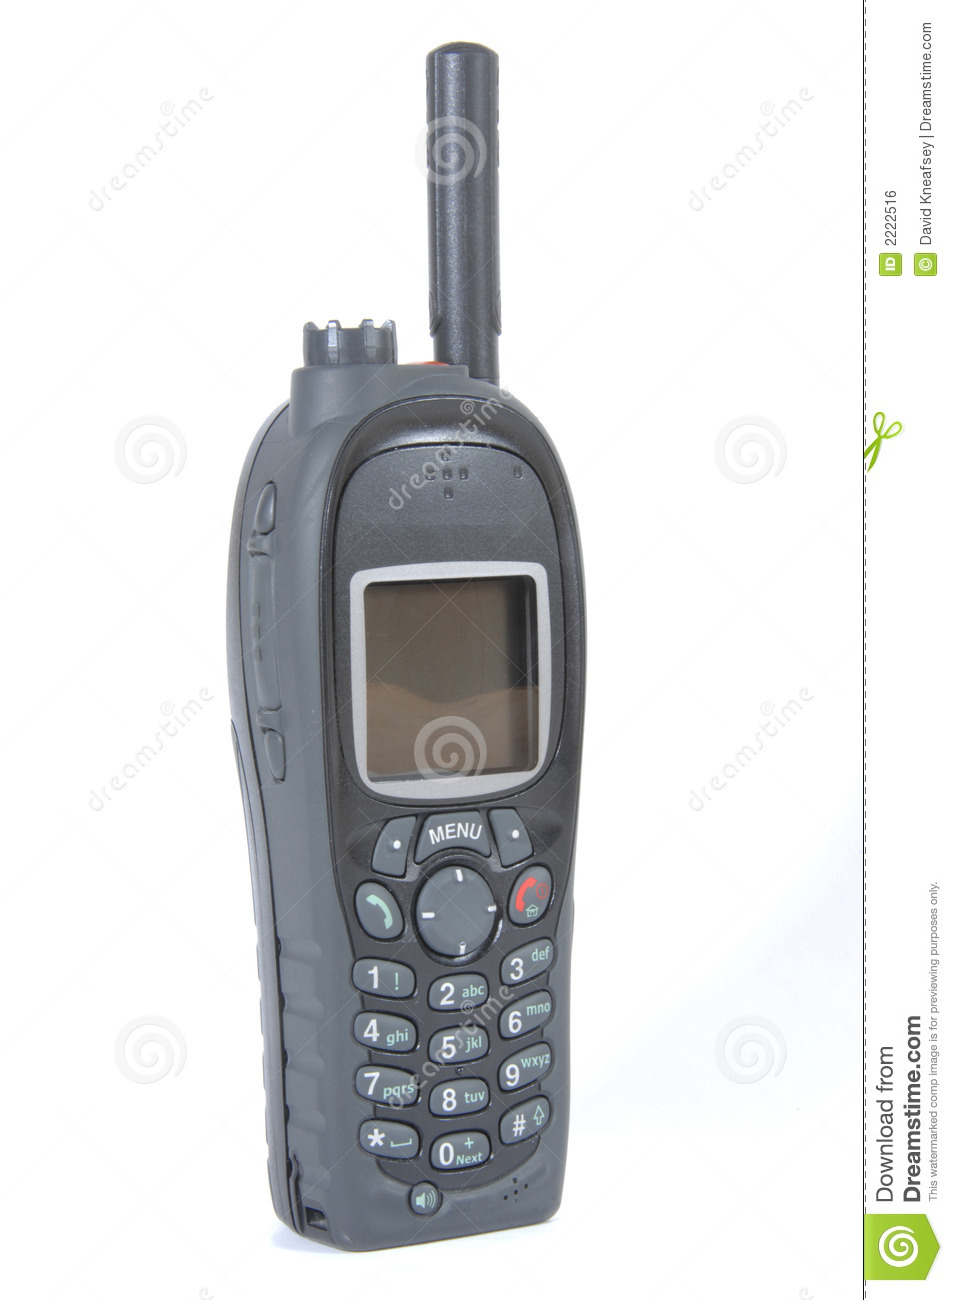 30 Days Without Dunkin Donuts Iced Coffee besides Contact Us furthermore Tribute Dj Screw October 20 1971 November 16 2000 together with 161628733497 additionally Royalty Free Stock Images Ww Manpack Radio Tranceiver World War Two Allied Military Man Portable Wireless Transceiver Set As Used Infantry Paratroop Image32420009. on two way radio business cards